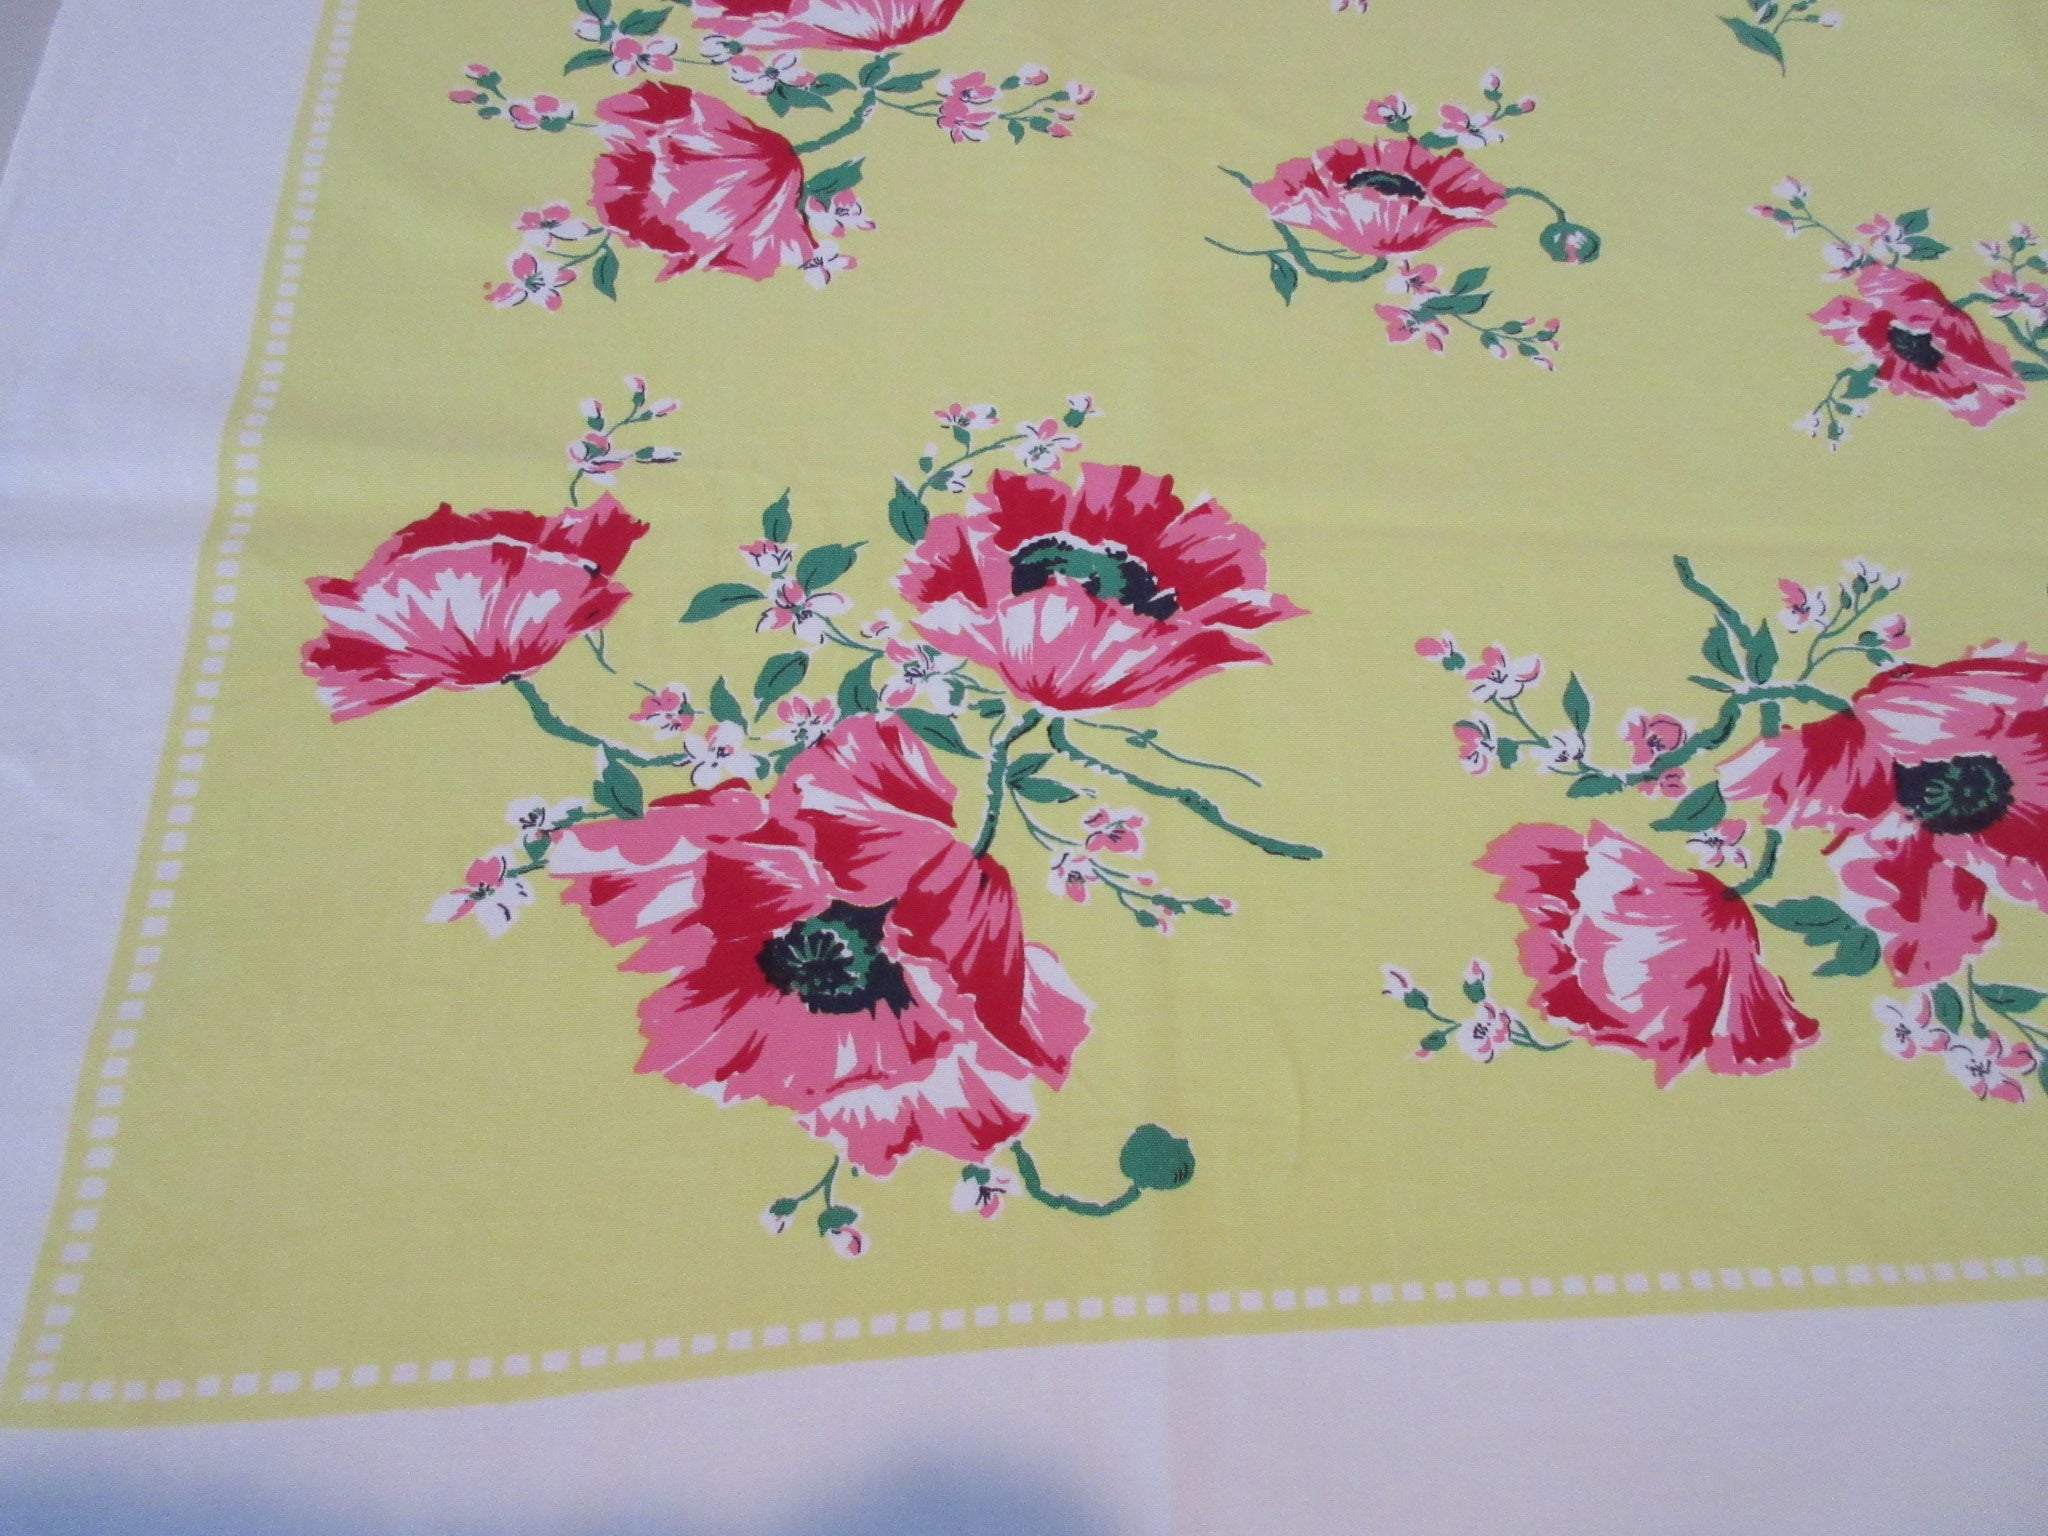 Bright Pink Green Poppies on Lemon Yellow Floral Vintage Printed Tablecloth (53 X 48)